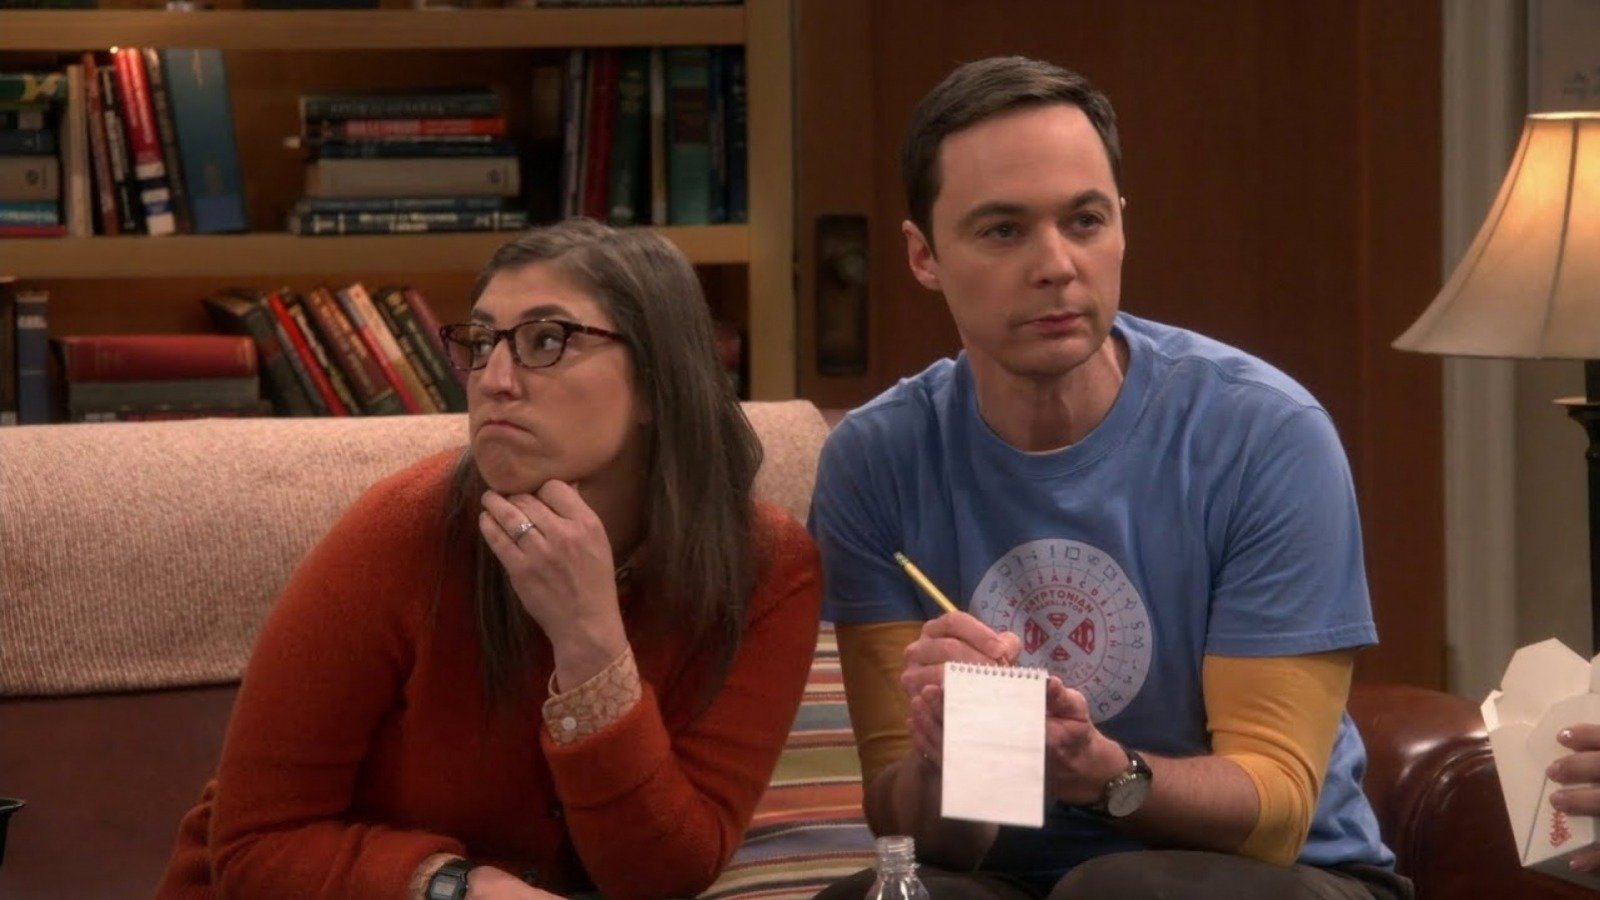 The Big Bang Theory Couple That Has Fans Divided